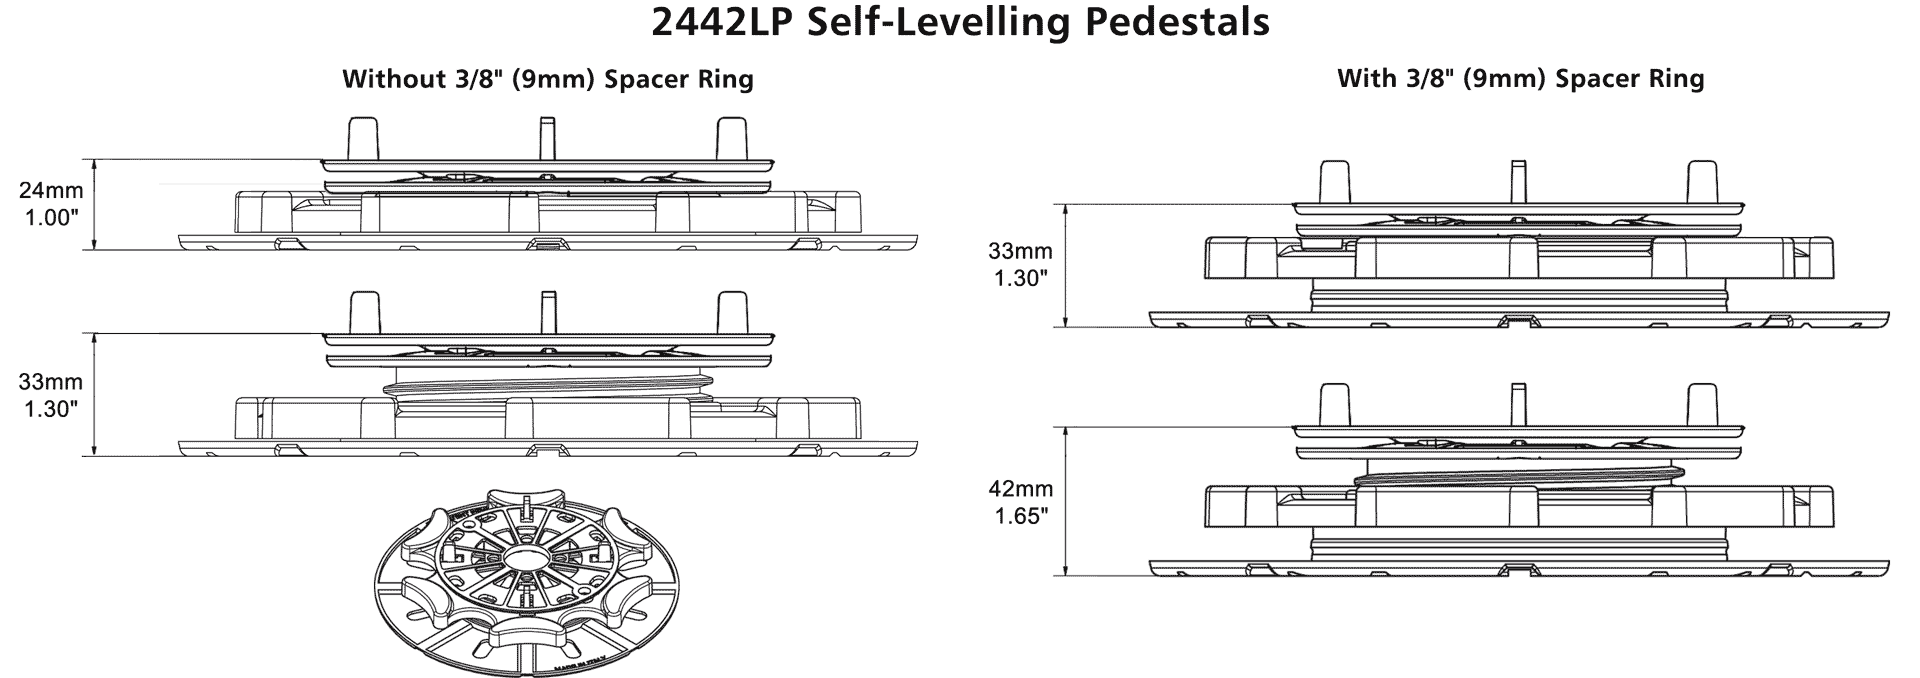 StrataRise 2442 Self Levelling Low Profile Pedestals - Technical Drawings